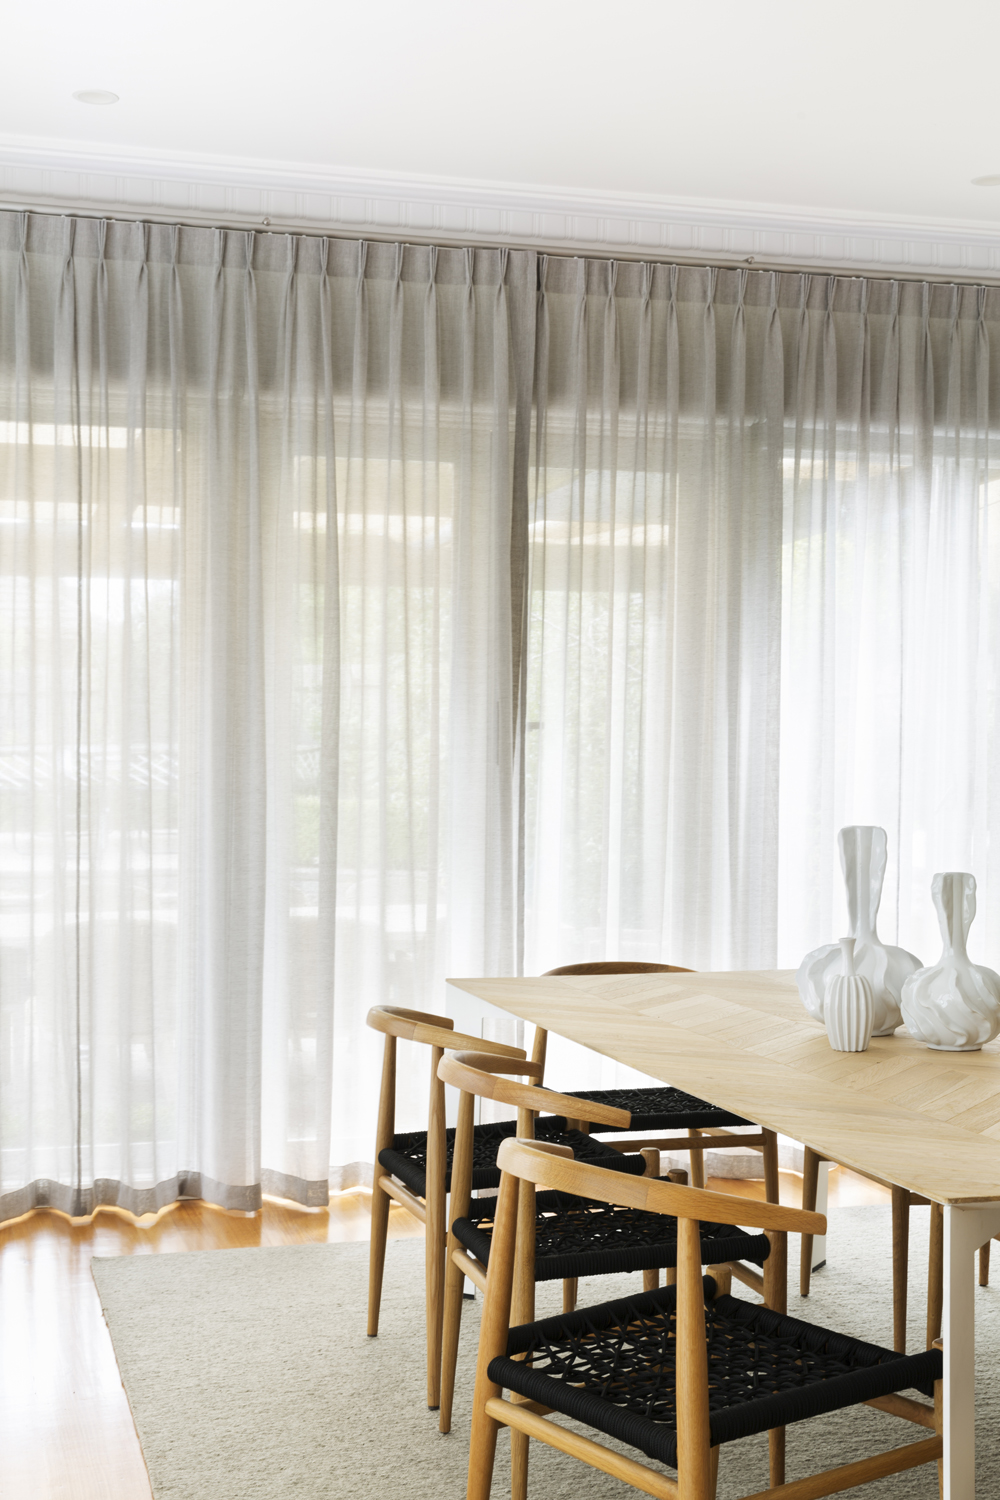 Sheer curtains designed by Melbourne interior designer Meredith Lee